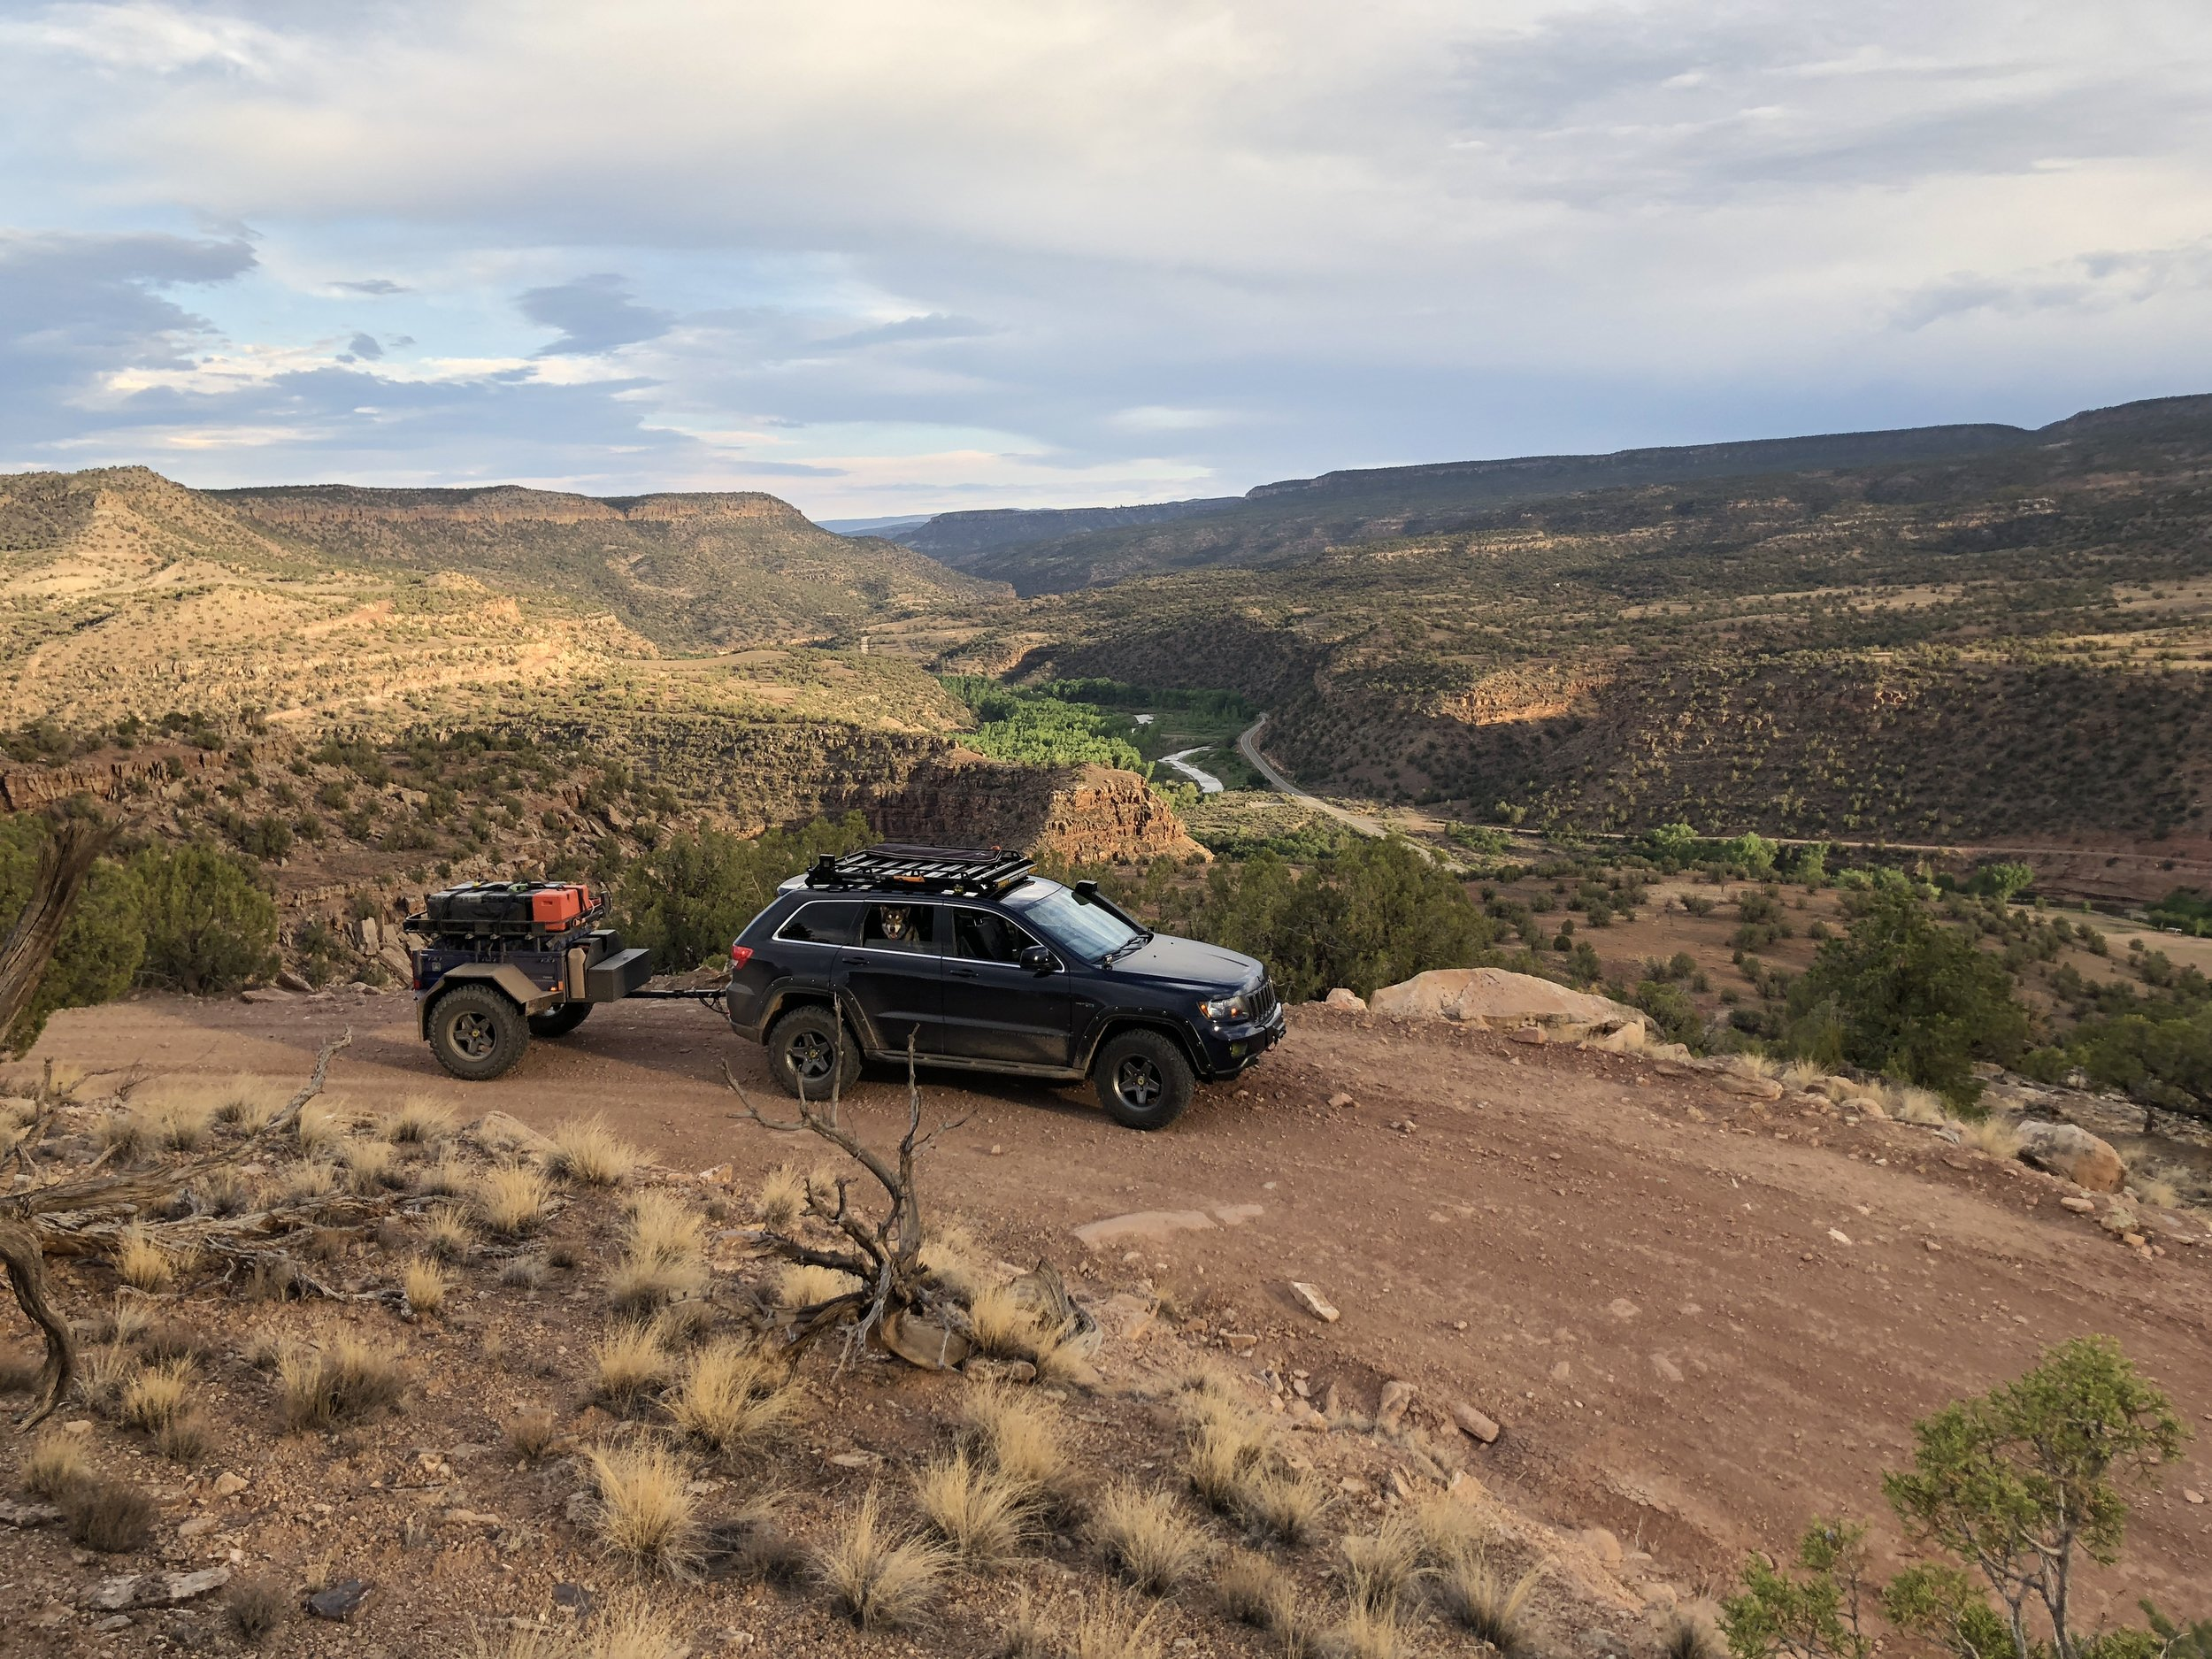 Rimrocker Trail Recon - Multiple days in summer 2018 scouting on the Rimrocker Trail from Montrose, Colorado to Moab, Utah